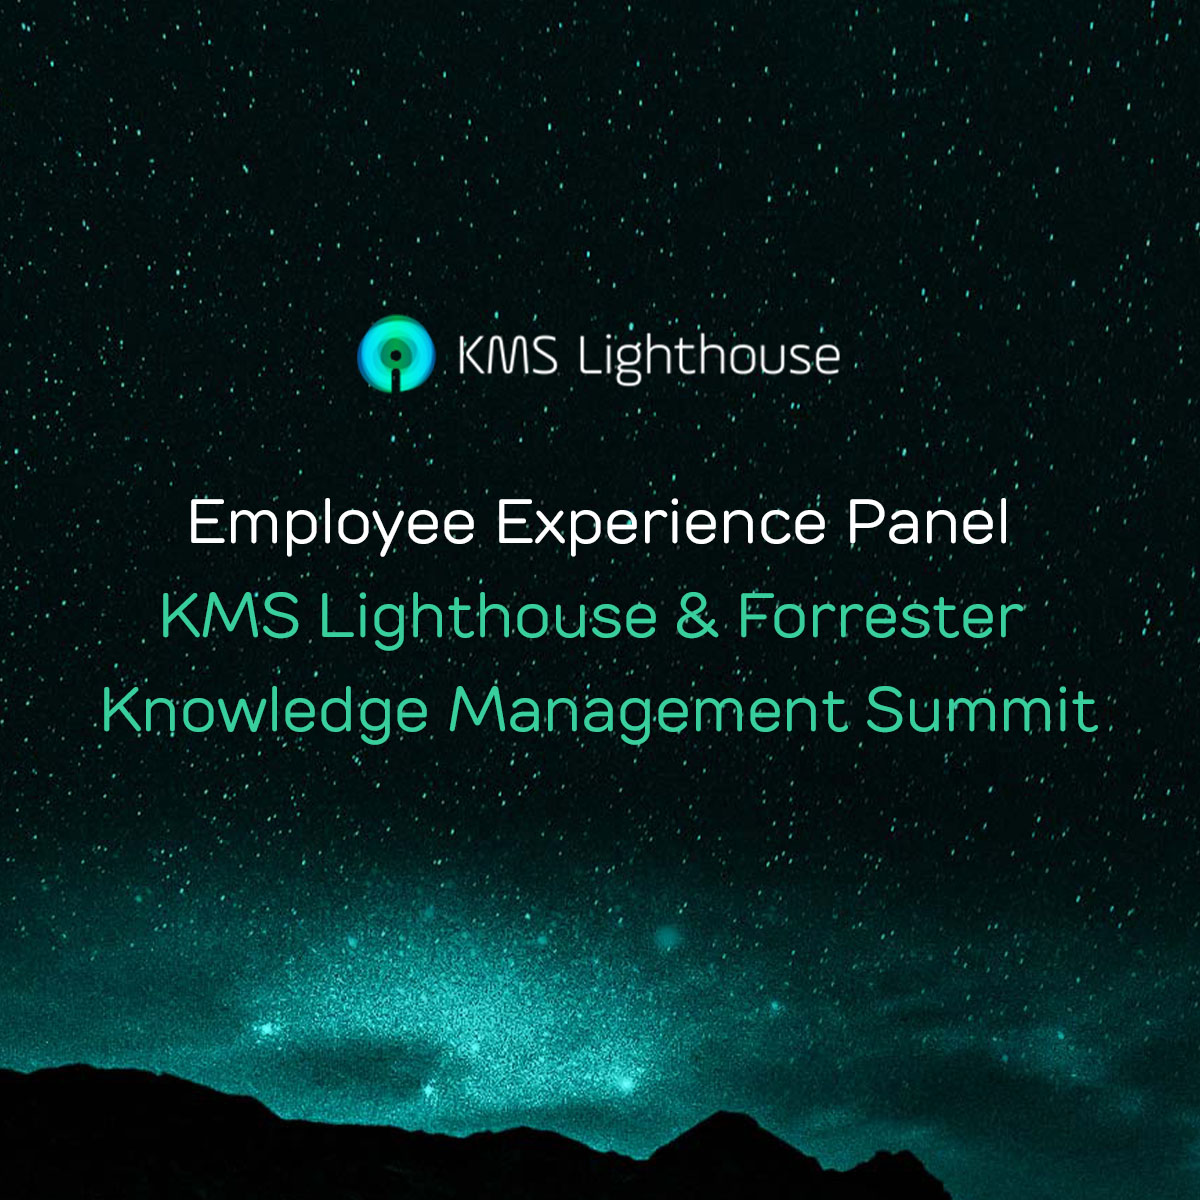 Watch the webinar:<br>Employee Experience Panel KMS Lighthouse & Forrester Knowledge Management Summit